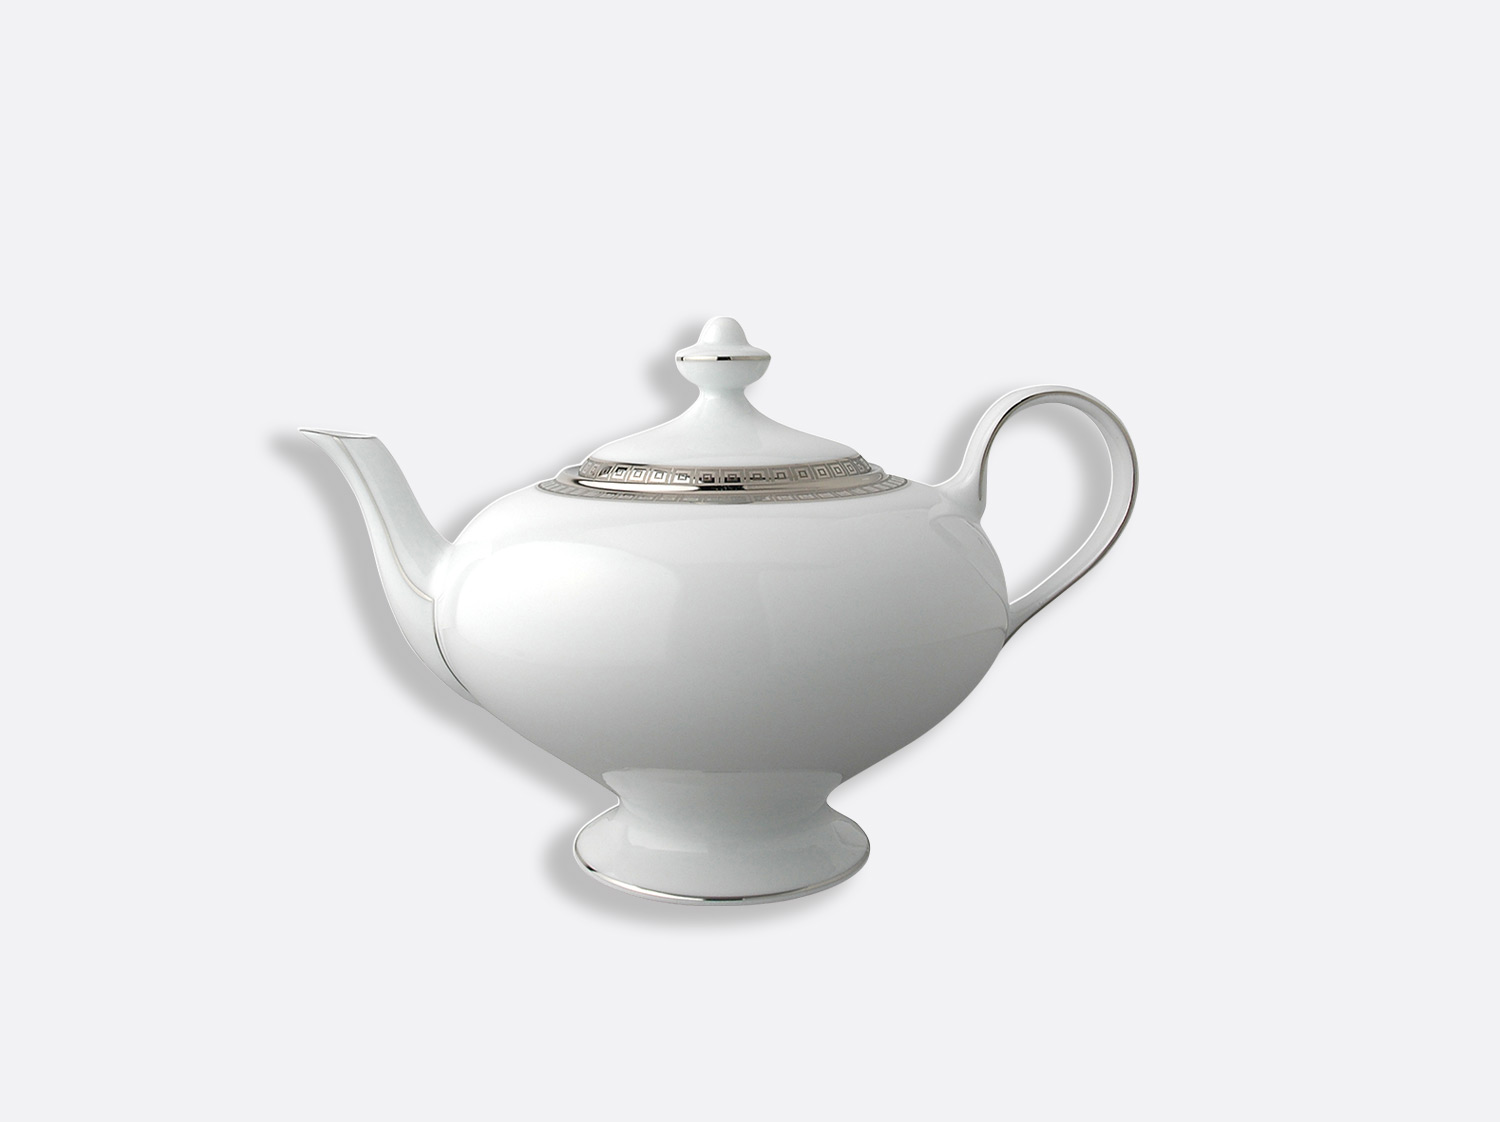 Théière 12 tasses 75 cl en porcelaine de la collection Athéna platine Bernardaud